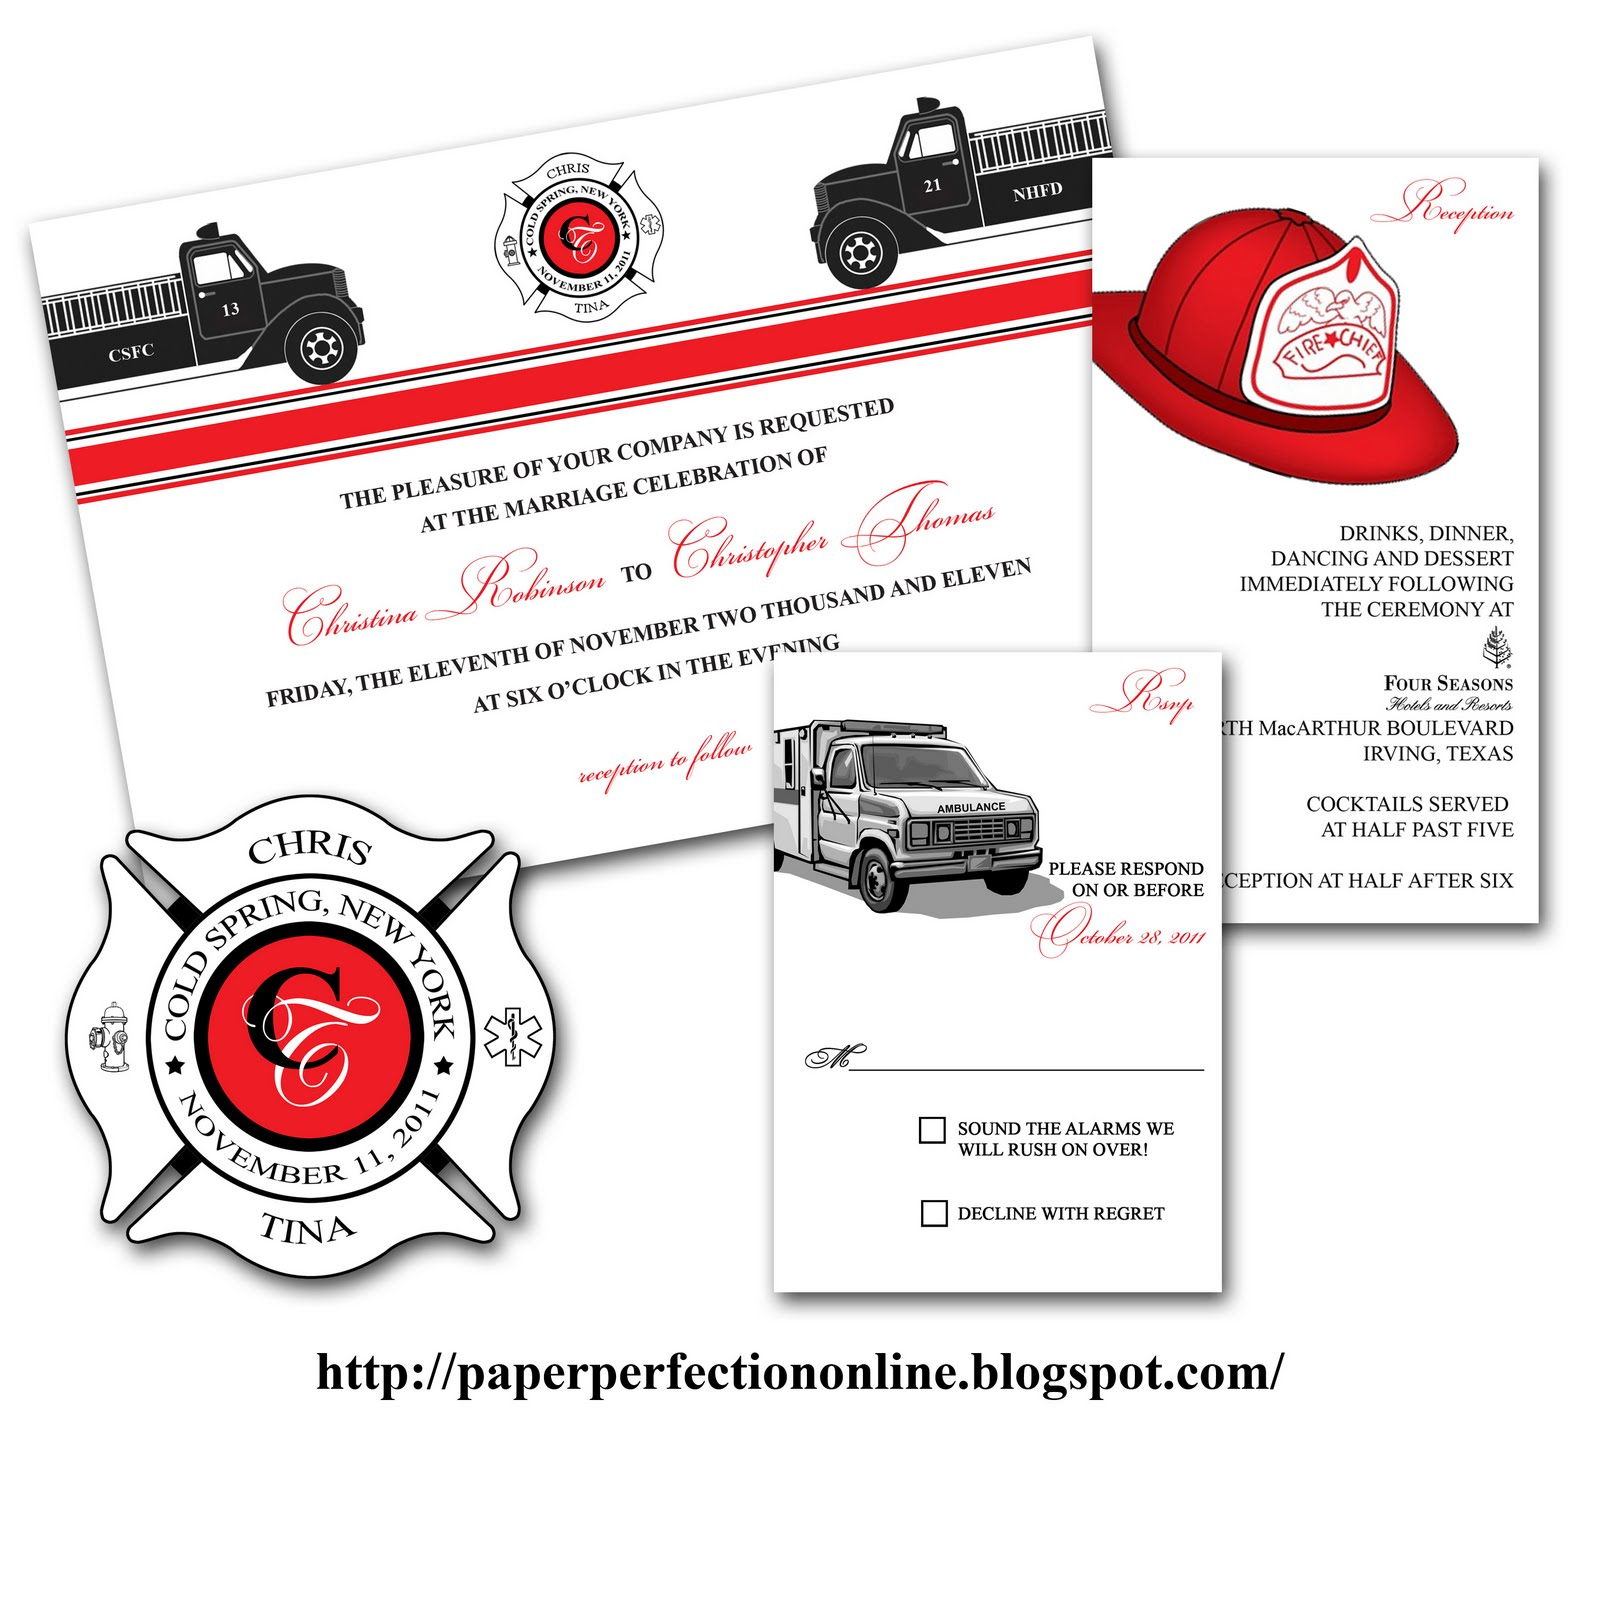 Firefighter Wedding Themes Ideas: Paper Perfection: Tina's Fire Fighter Wedding Invitation